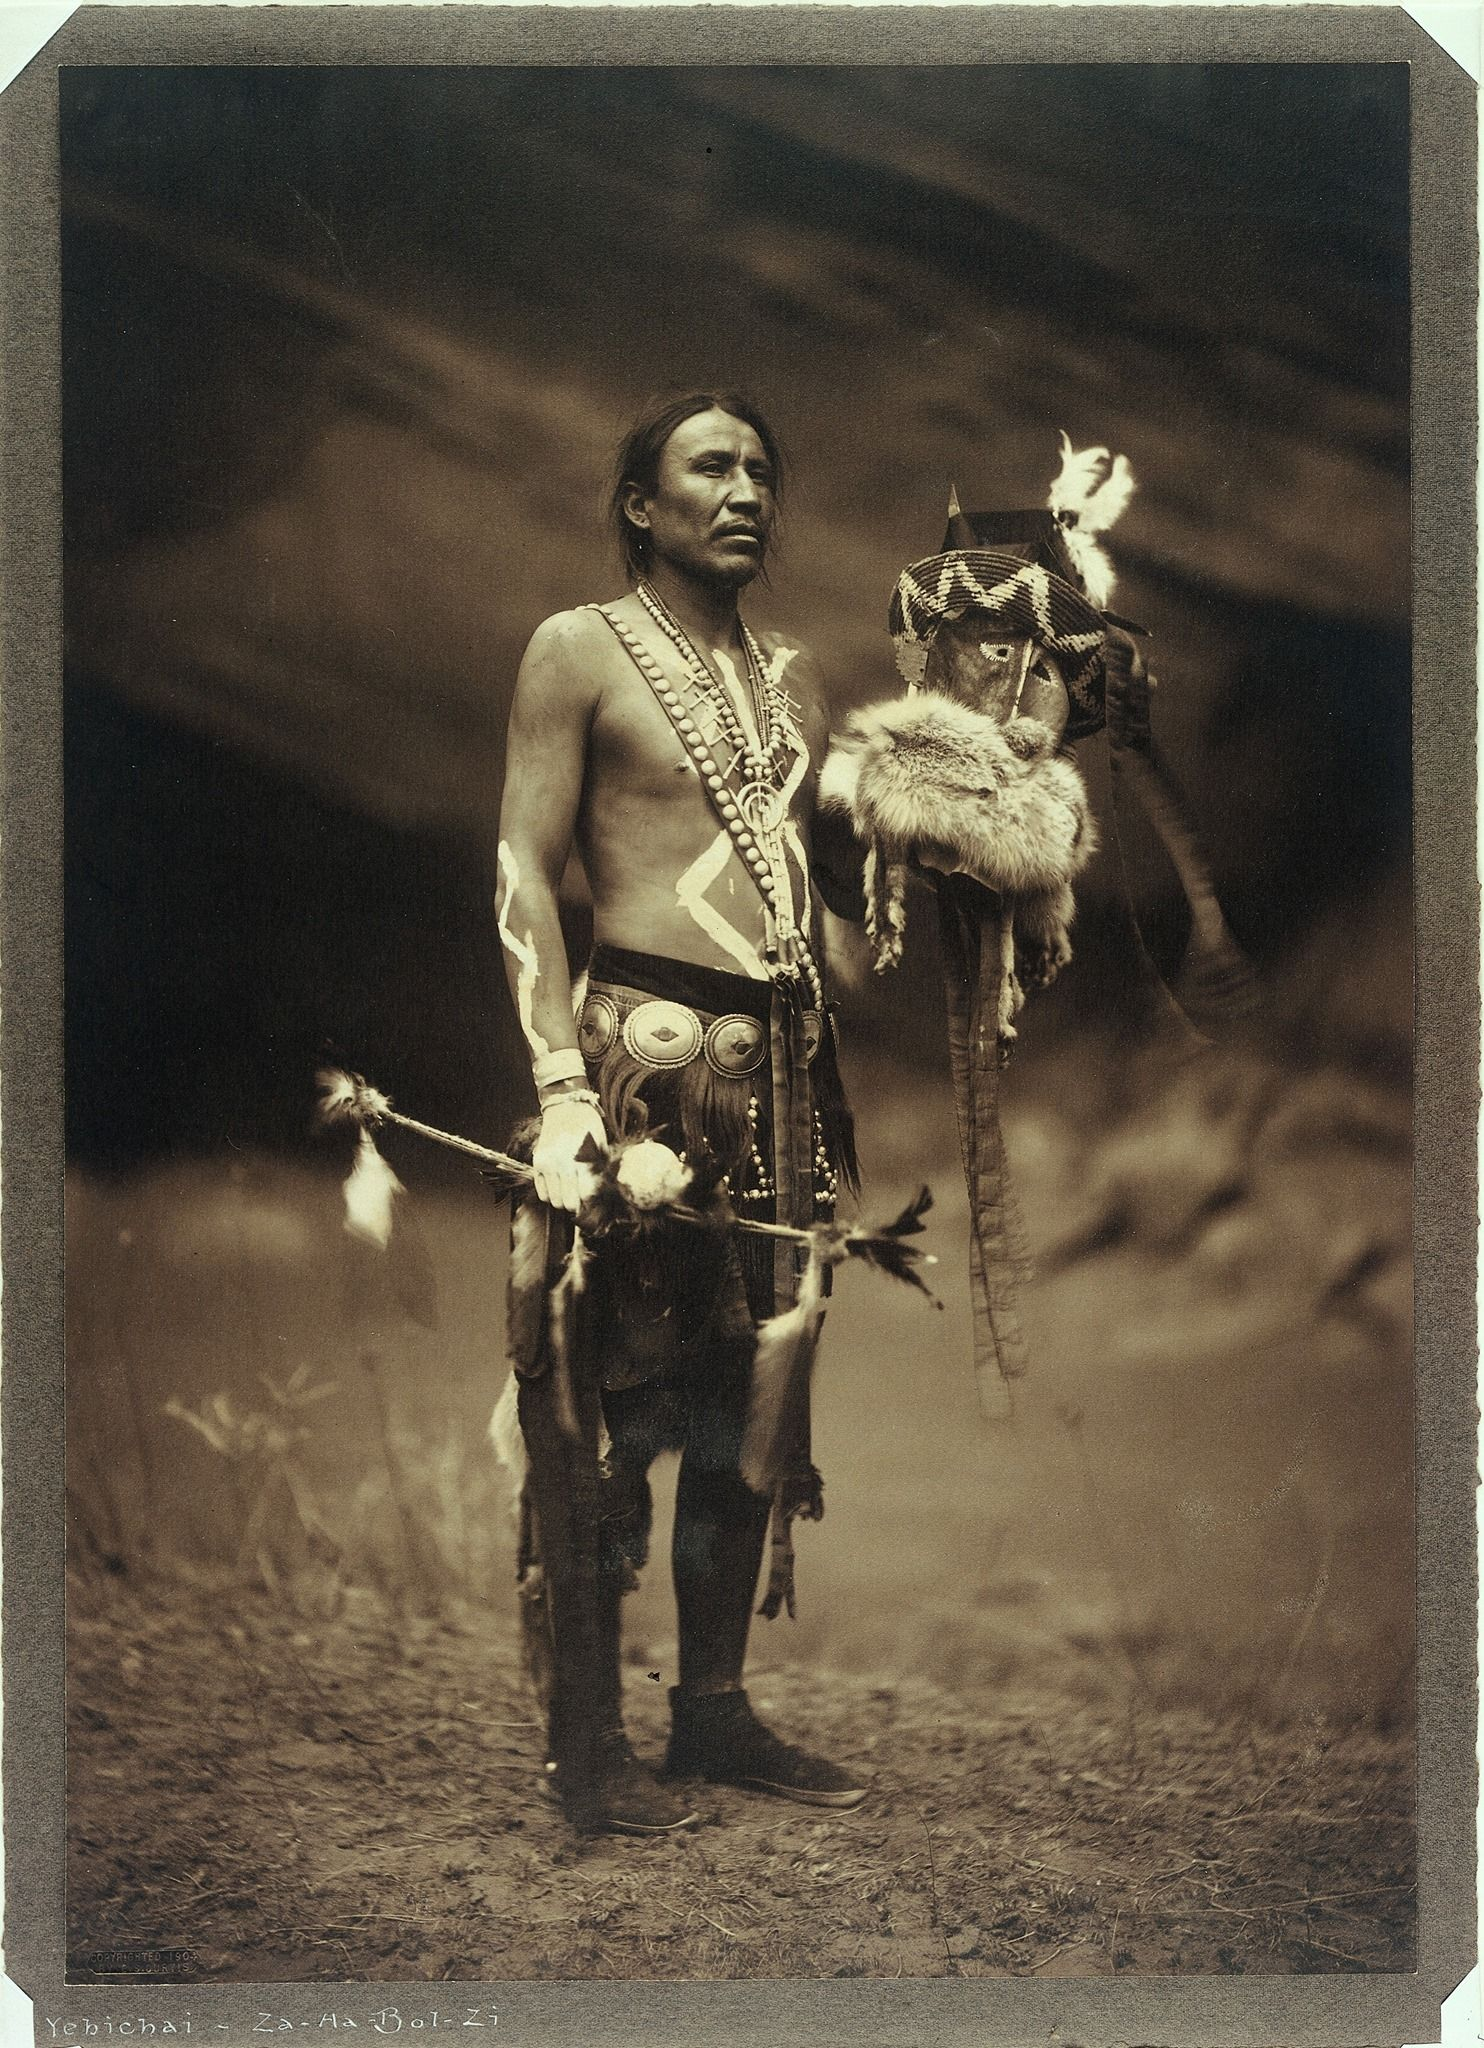 A Navajo man in ceremonial dress representing the Yebichai god Zahadolzha. Photograph by Edward S. Curtis, 1904.  But no name or location